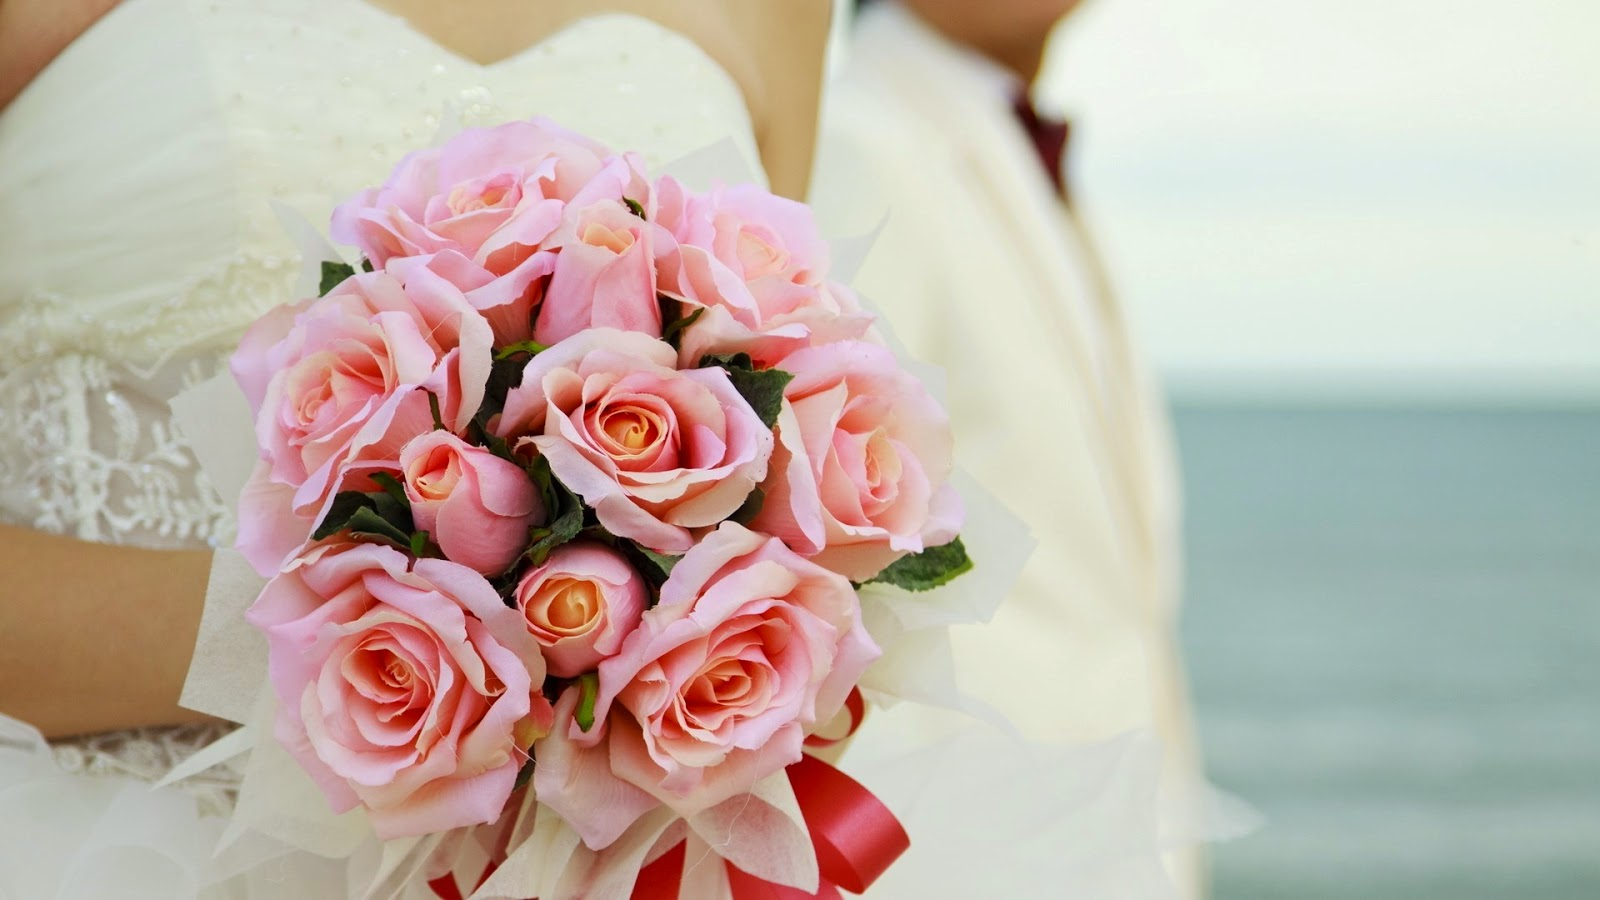 Wedding Bouquet Definition : Romantic hands roses beautiful high definition wallpapers